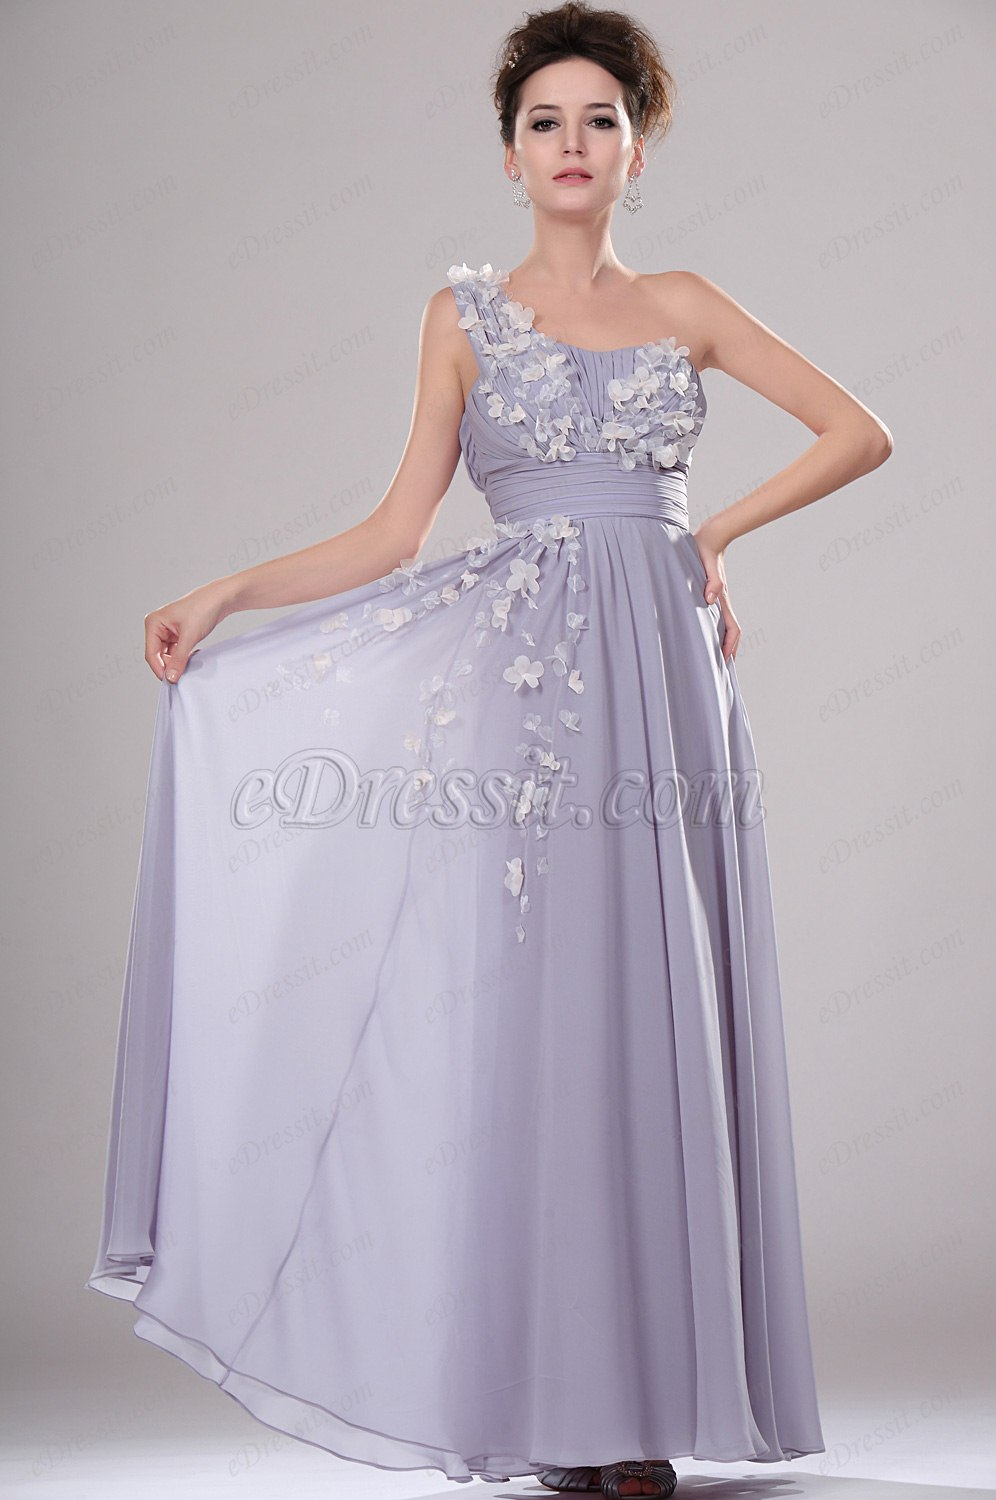 Clearance Sale !eDressit One Shoulder Evening Dress (00114406B)